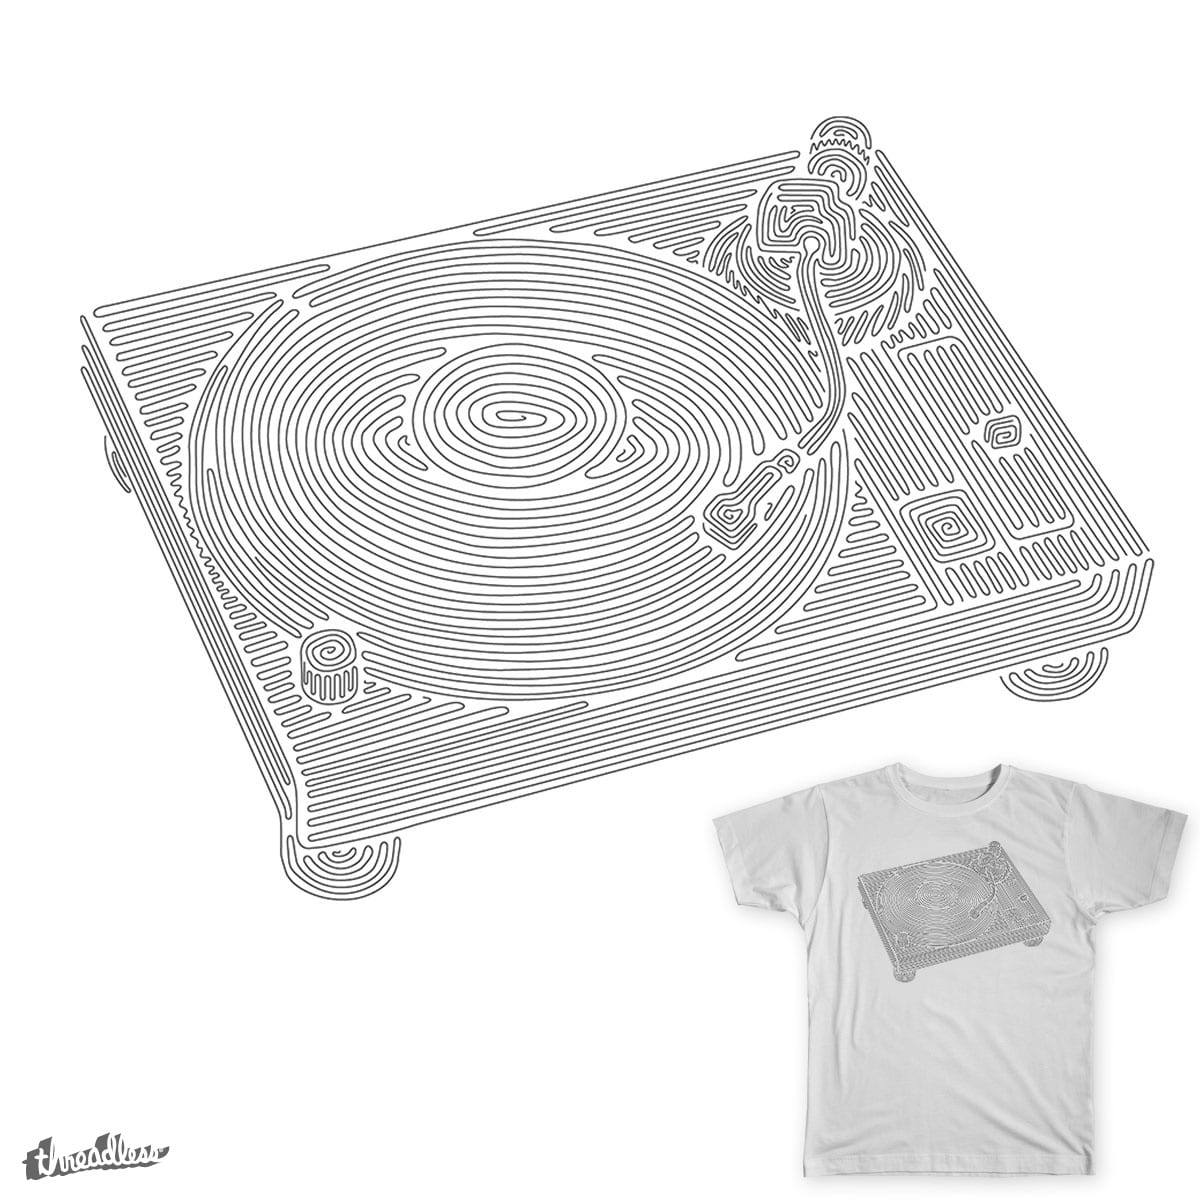 Turntable by jomorris92 on Threadless